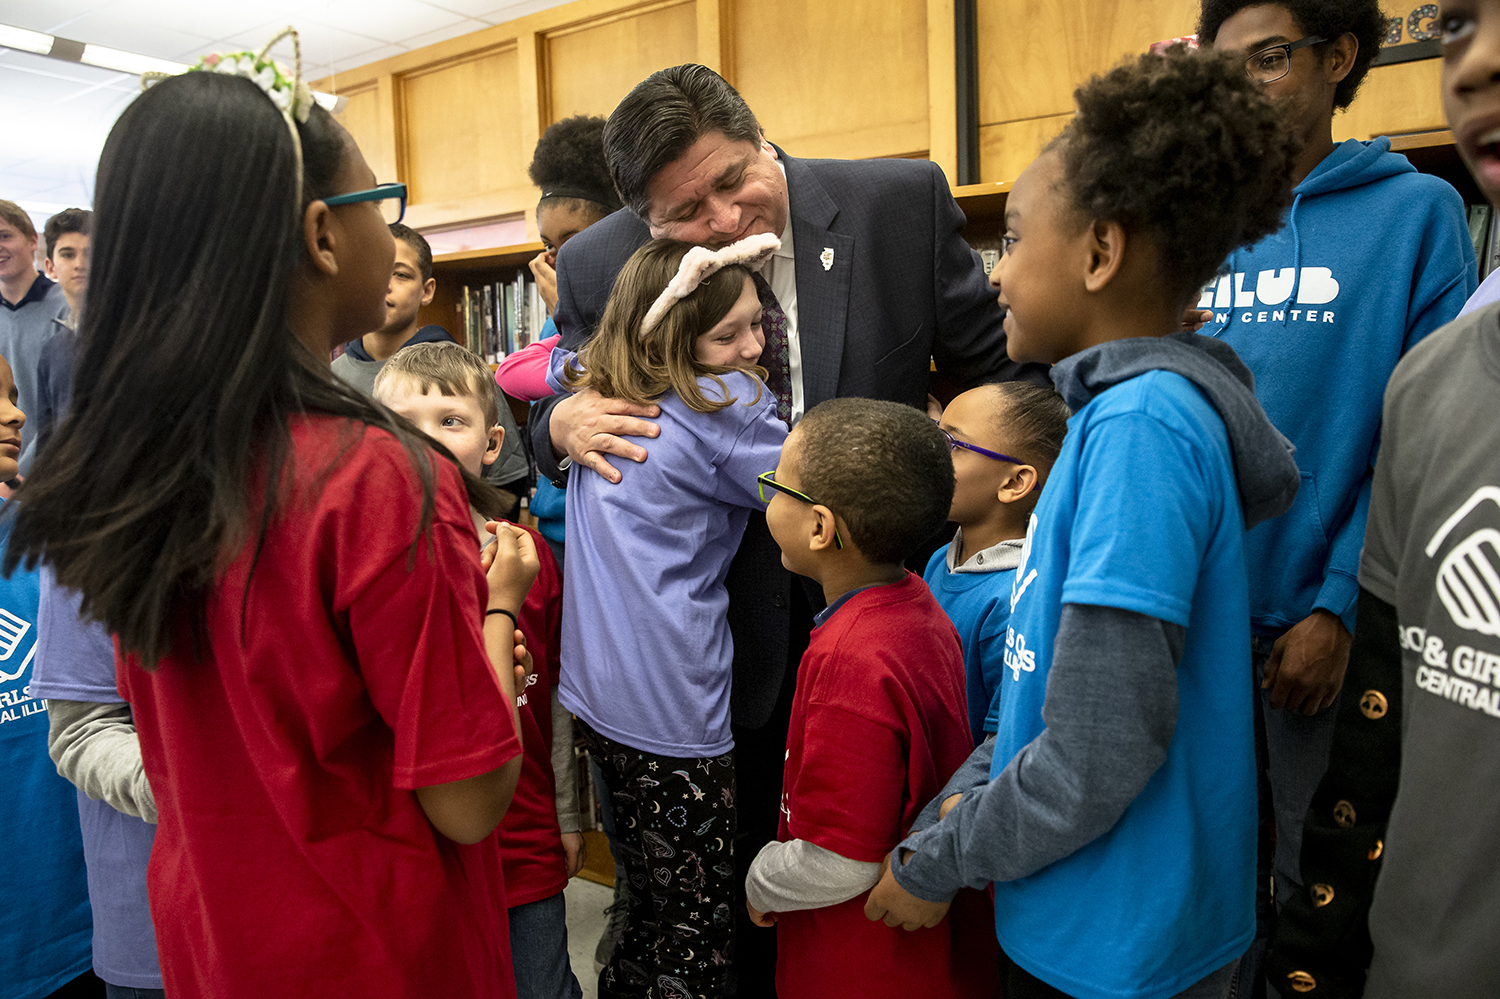 Illinois Governor J.B. Pritzker gets a hug from Abby Tavender, 10, while visiting with members of the Boys and Girls Clubs of Central Illinois after holding a press conference to sign HB 2505, a bill allowing universities to retain unused AIM HIGH scholarship funds and allow for flexibility administering the program, at Southeast High School, Thursday, April 4, 2019, in Springfield, Ill. [Justin L. Fowler/The State Journal-Register]